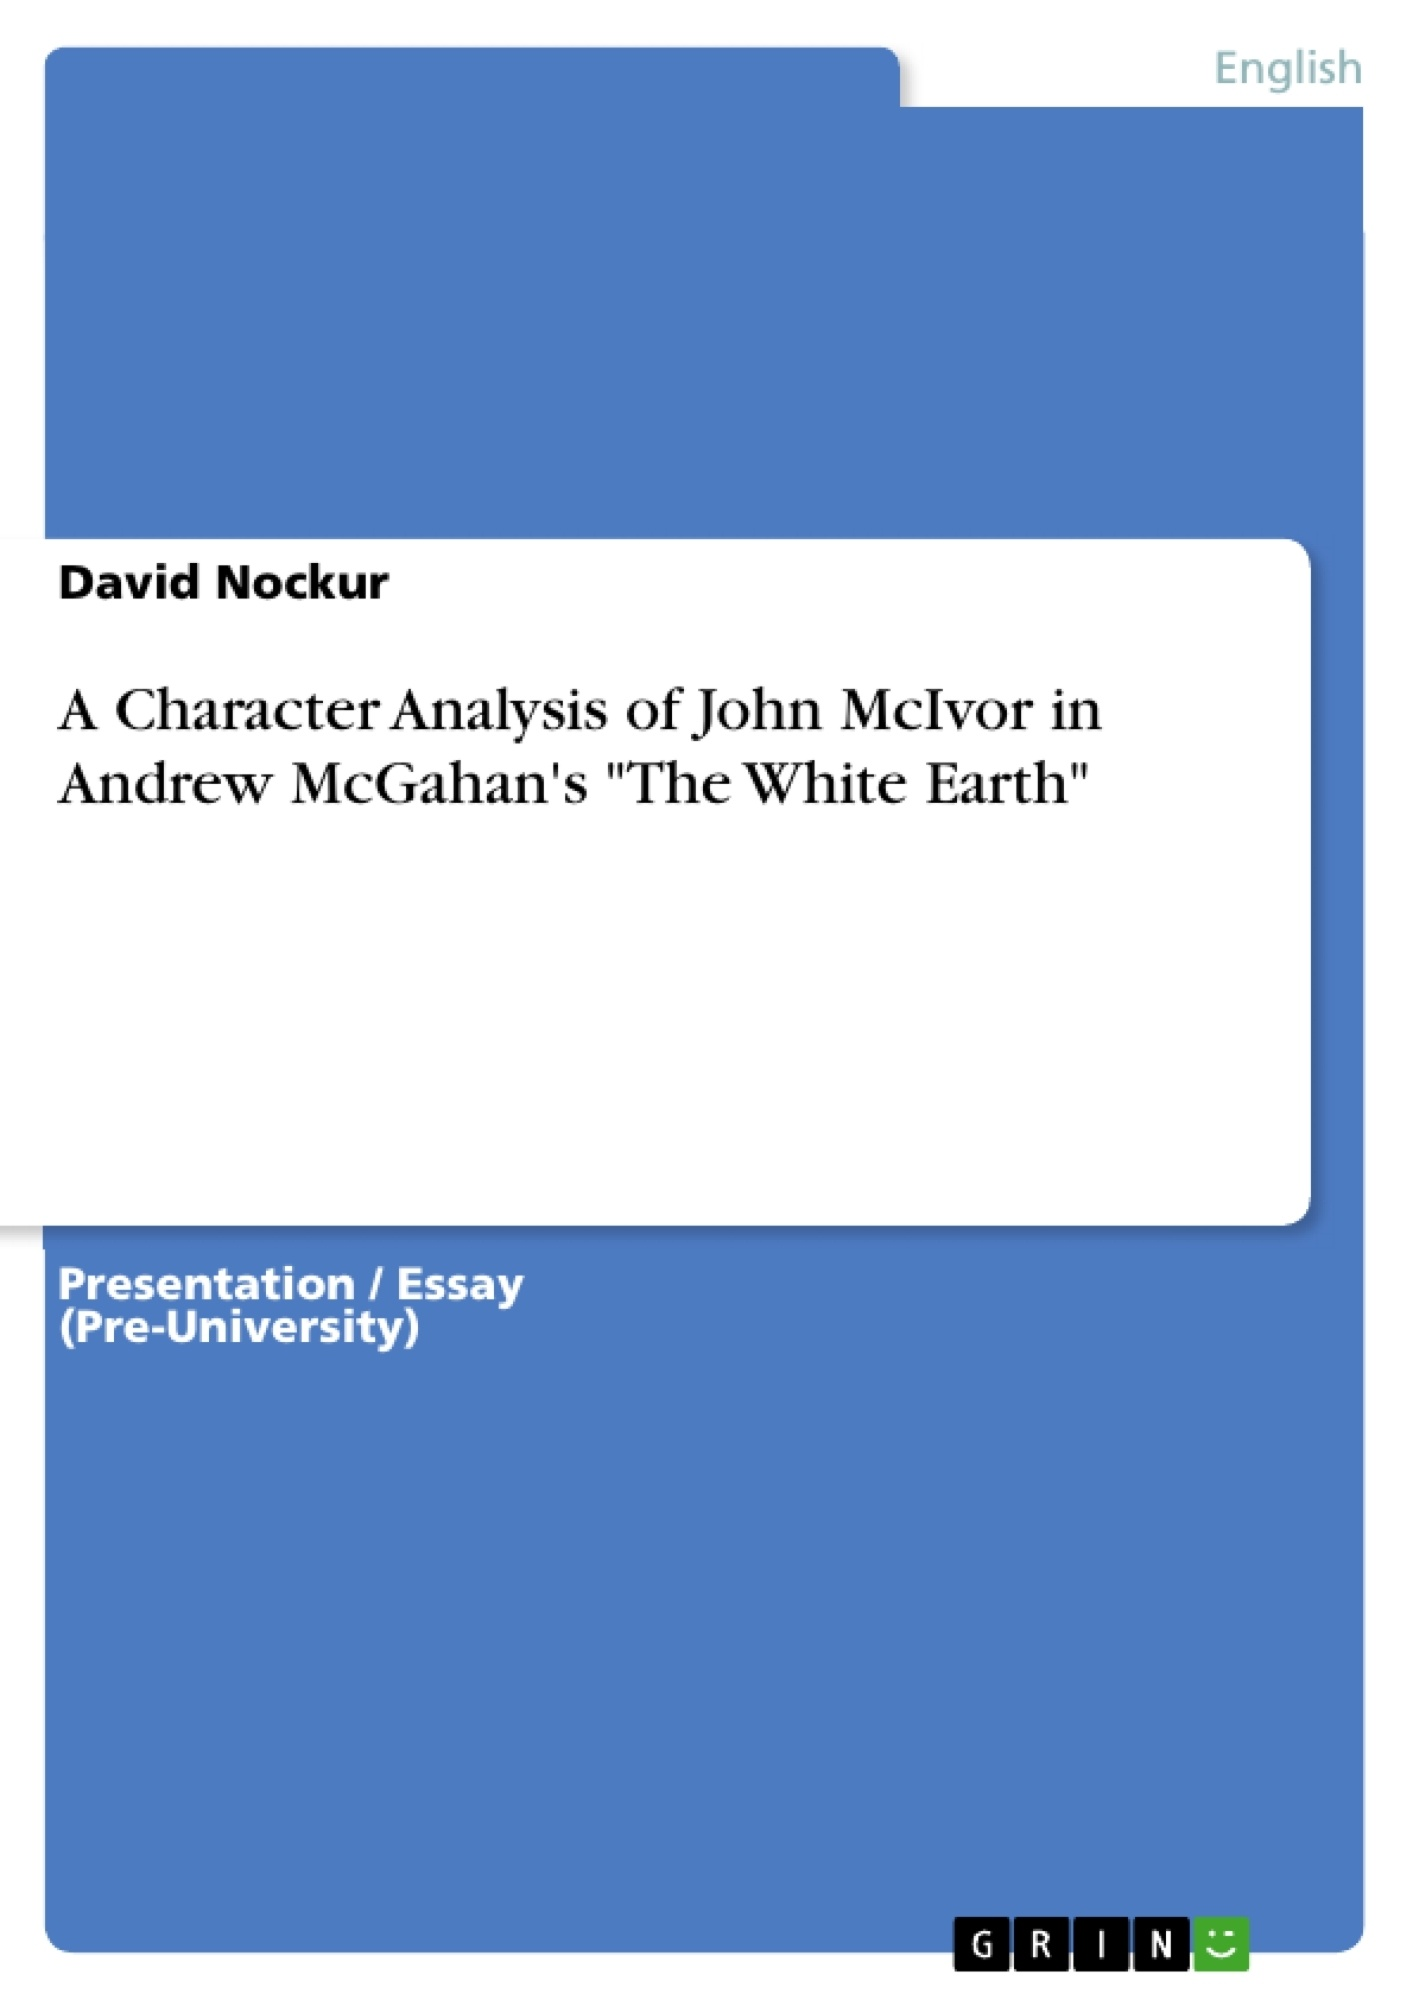 """Title: A Character Analysis of John McIvor in Andrew McGahan's """"The White Earth"""""""